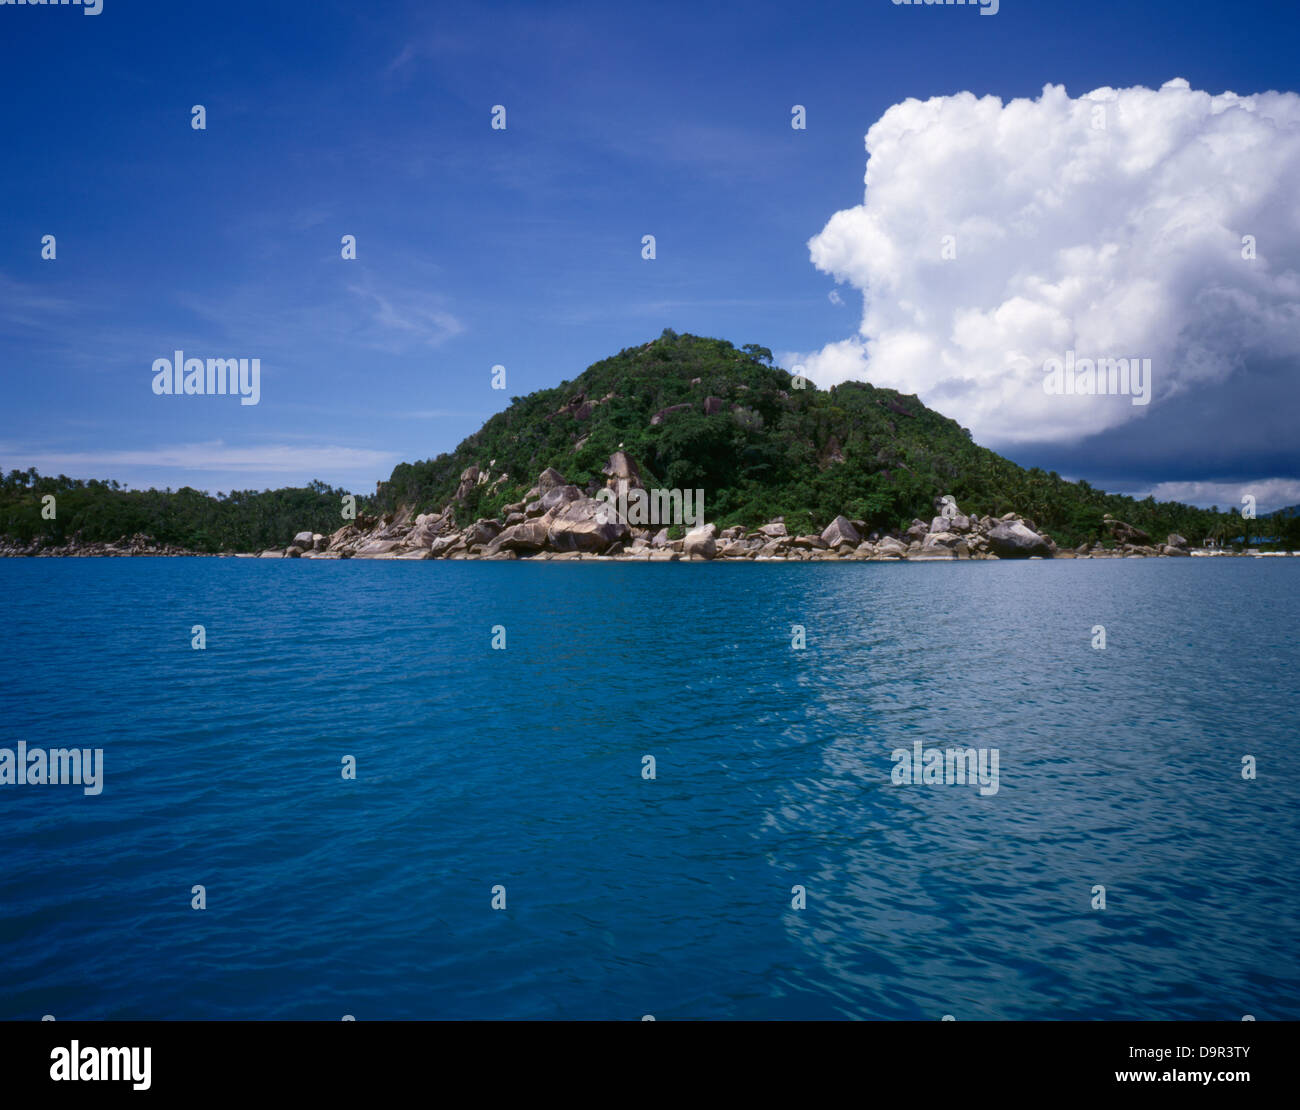 Thailand, Koh Samui, view from a boat, cloud is growing, weather is changing - Stock Image